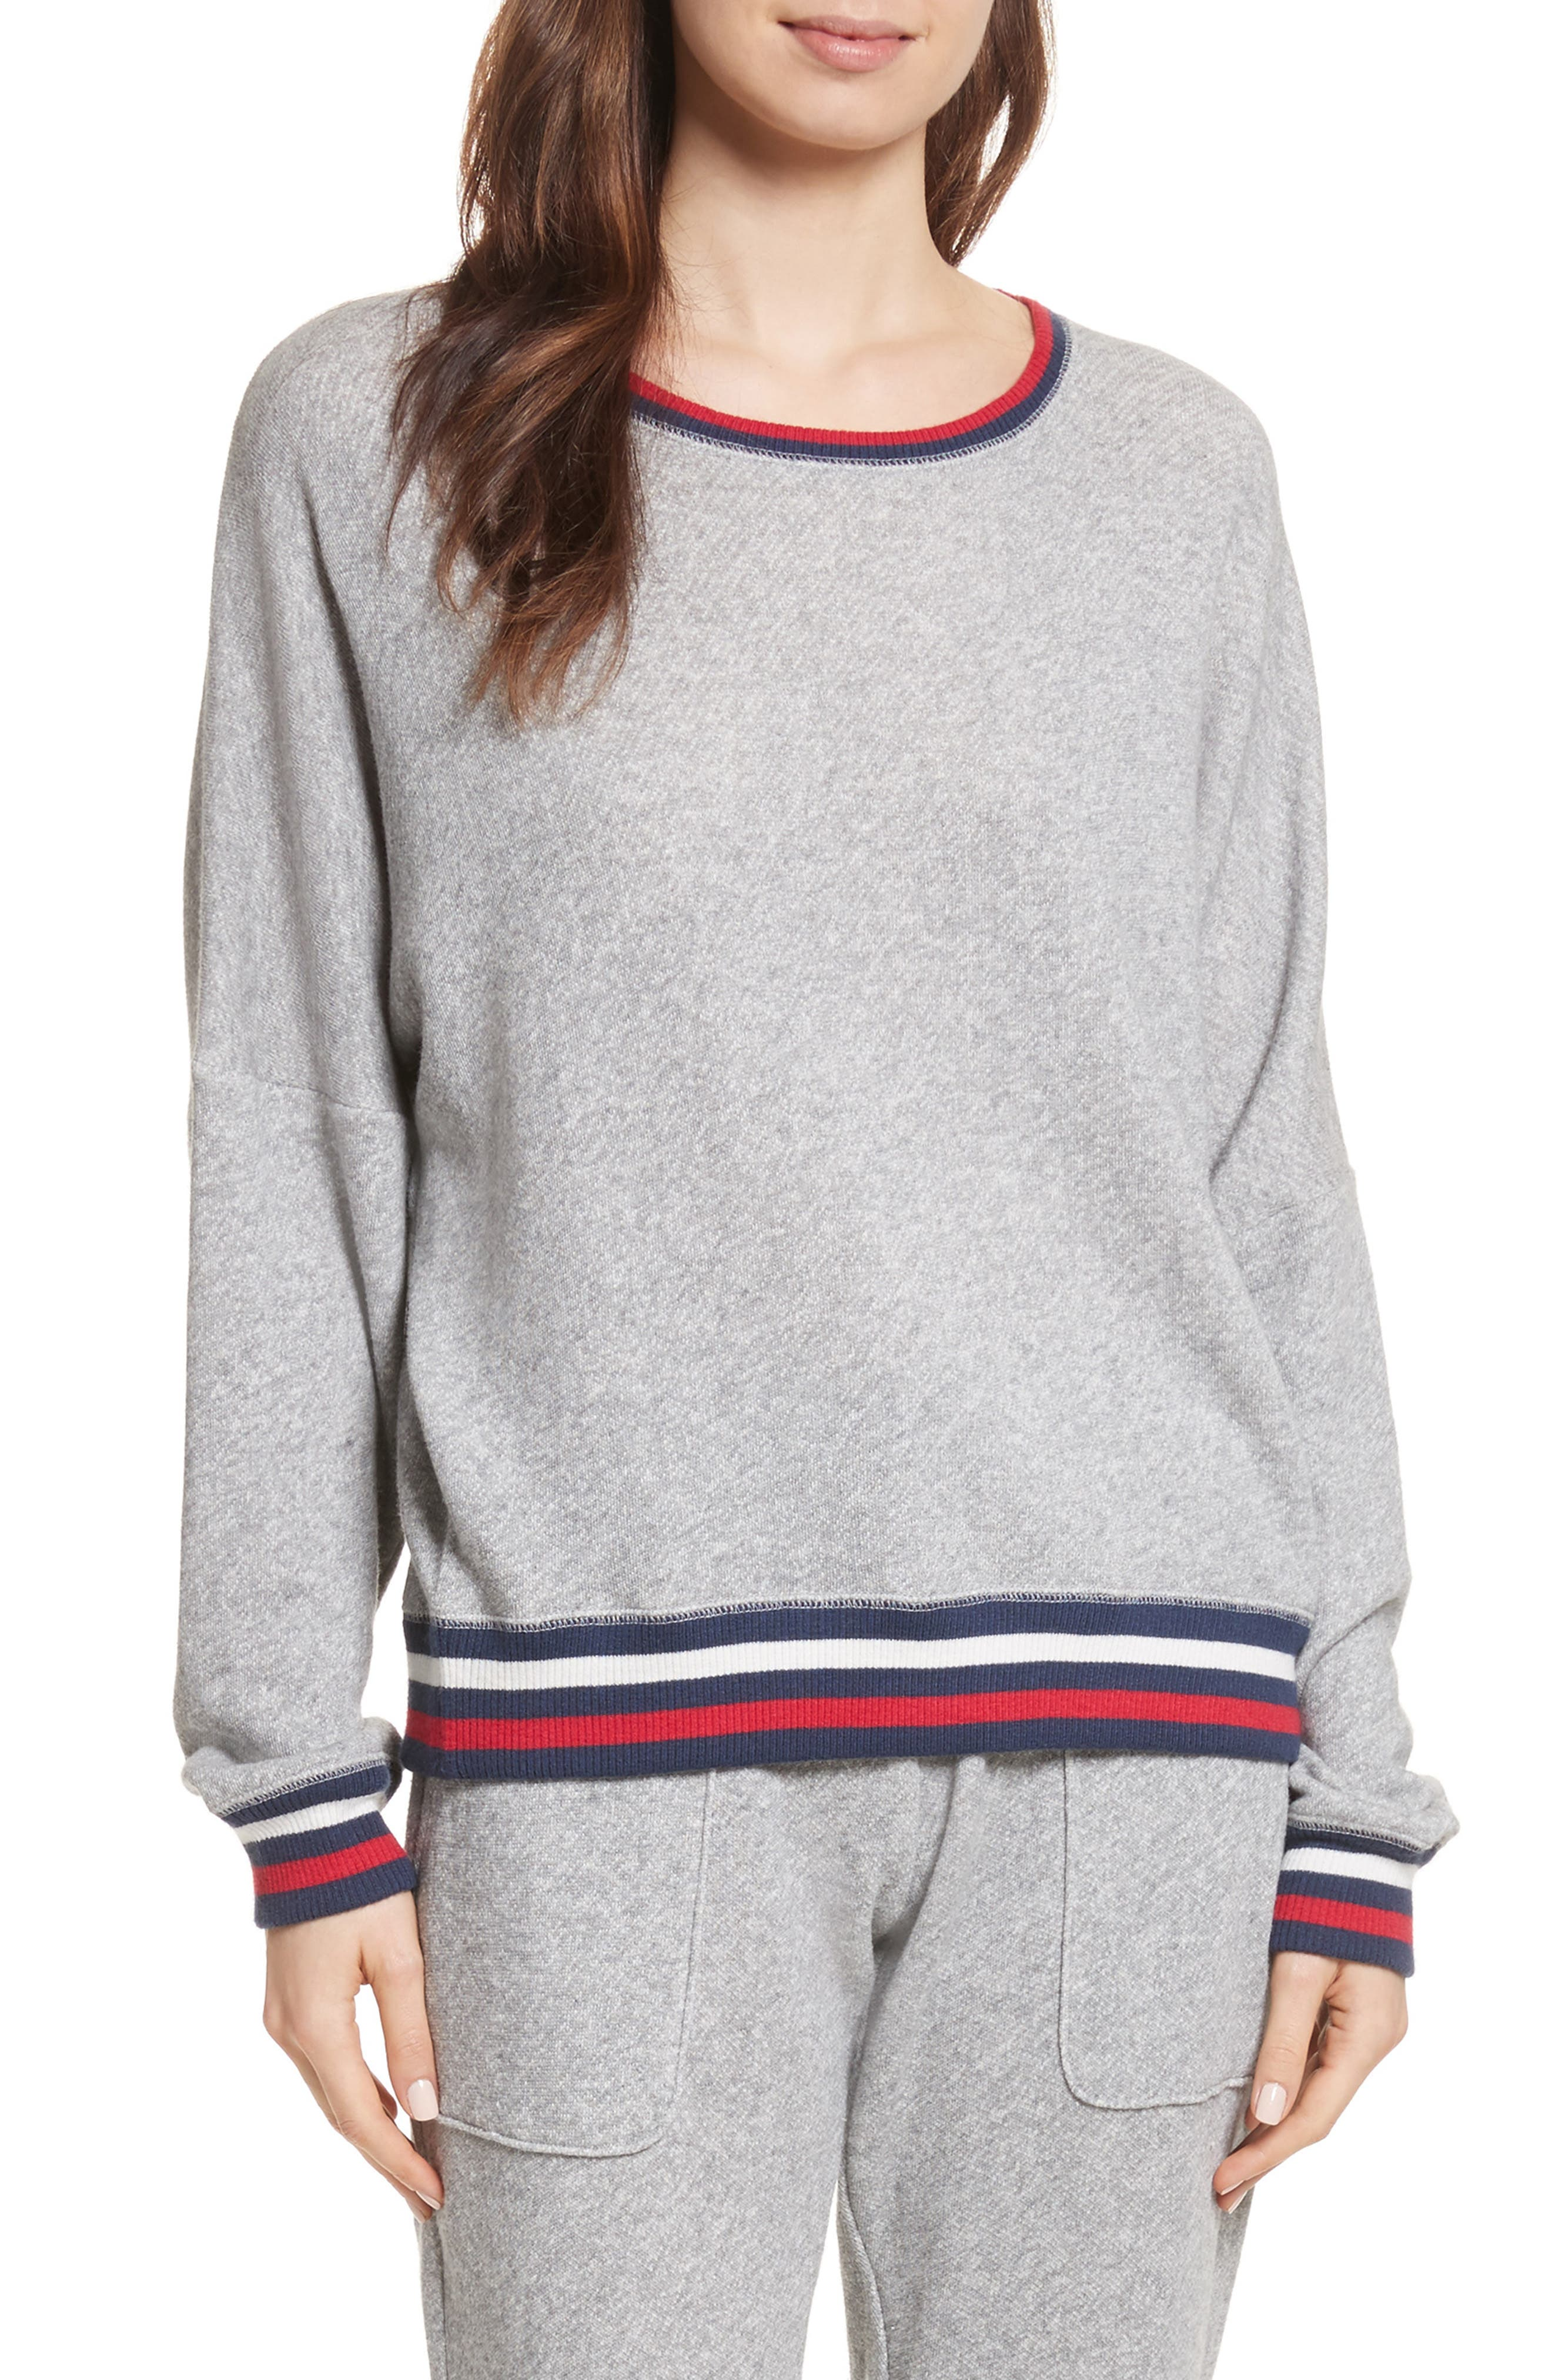 JOIE,                             Richardine B Sweatshirt,                             Main thumbnail 1, color,                             033